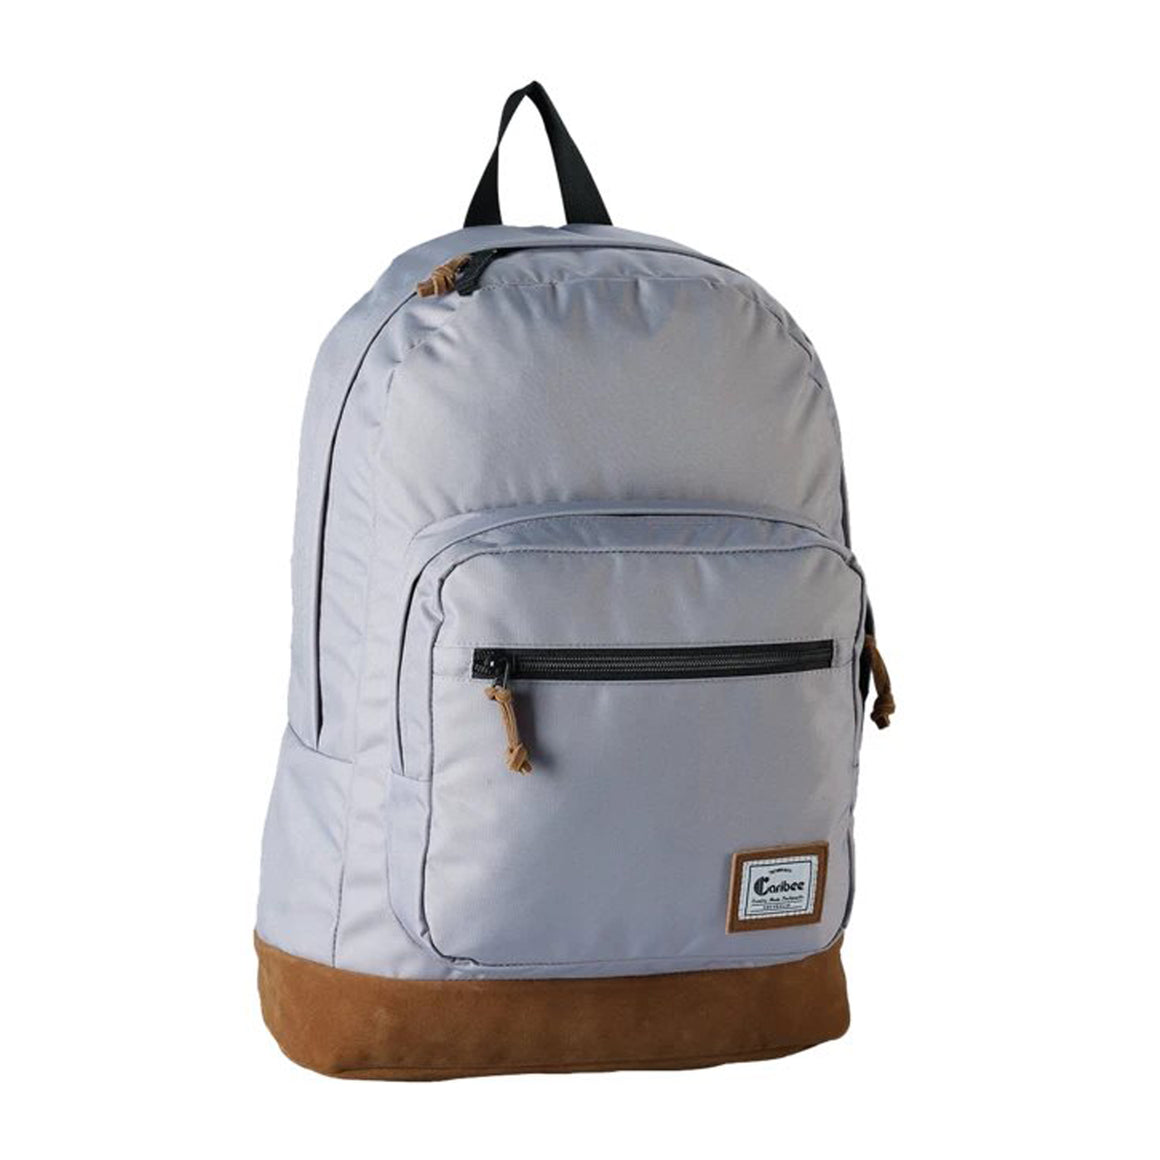 Retro Backpack in Grey